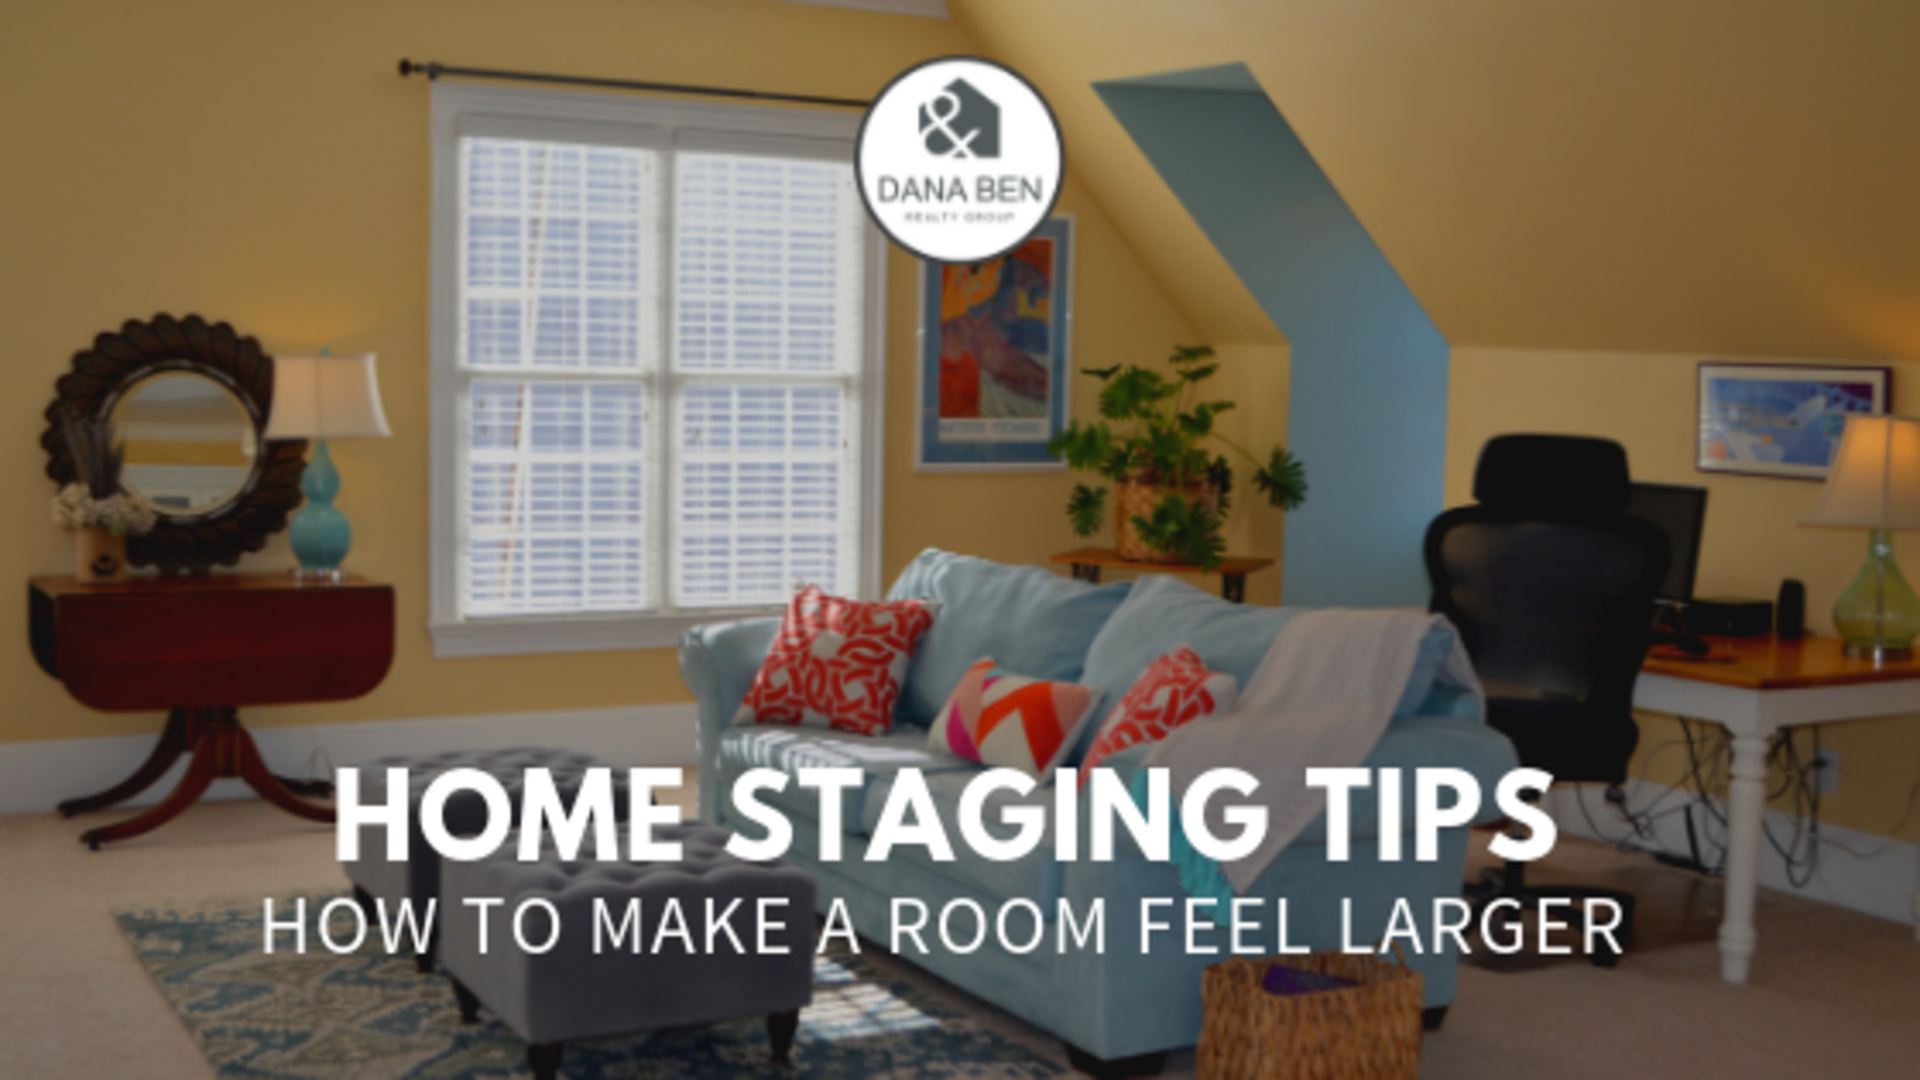 Home Staging Tip: How to Make a Room Feel Larger